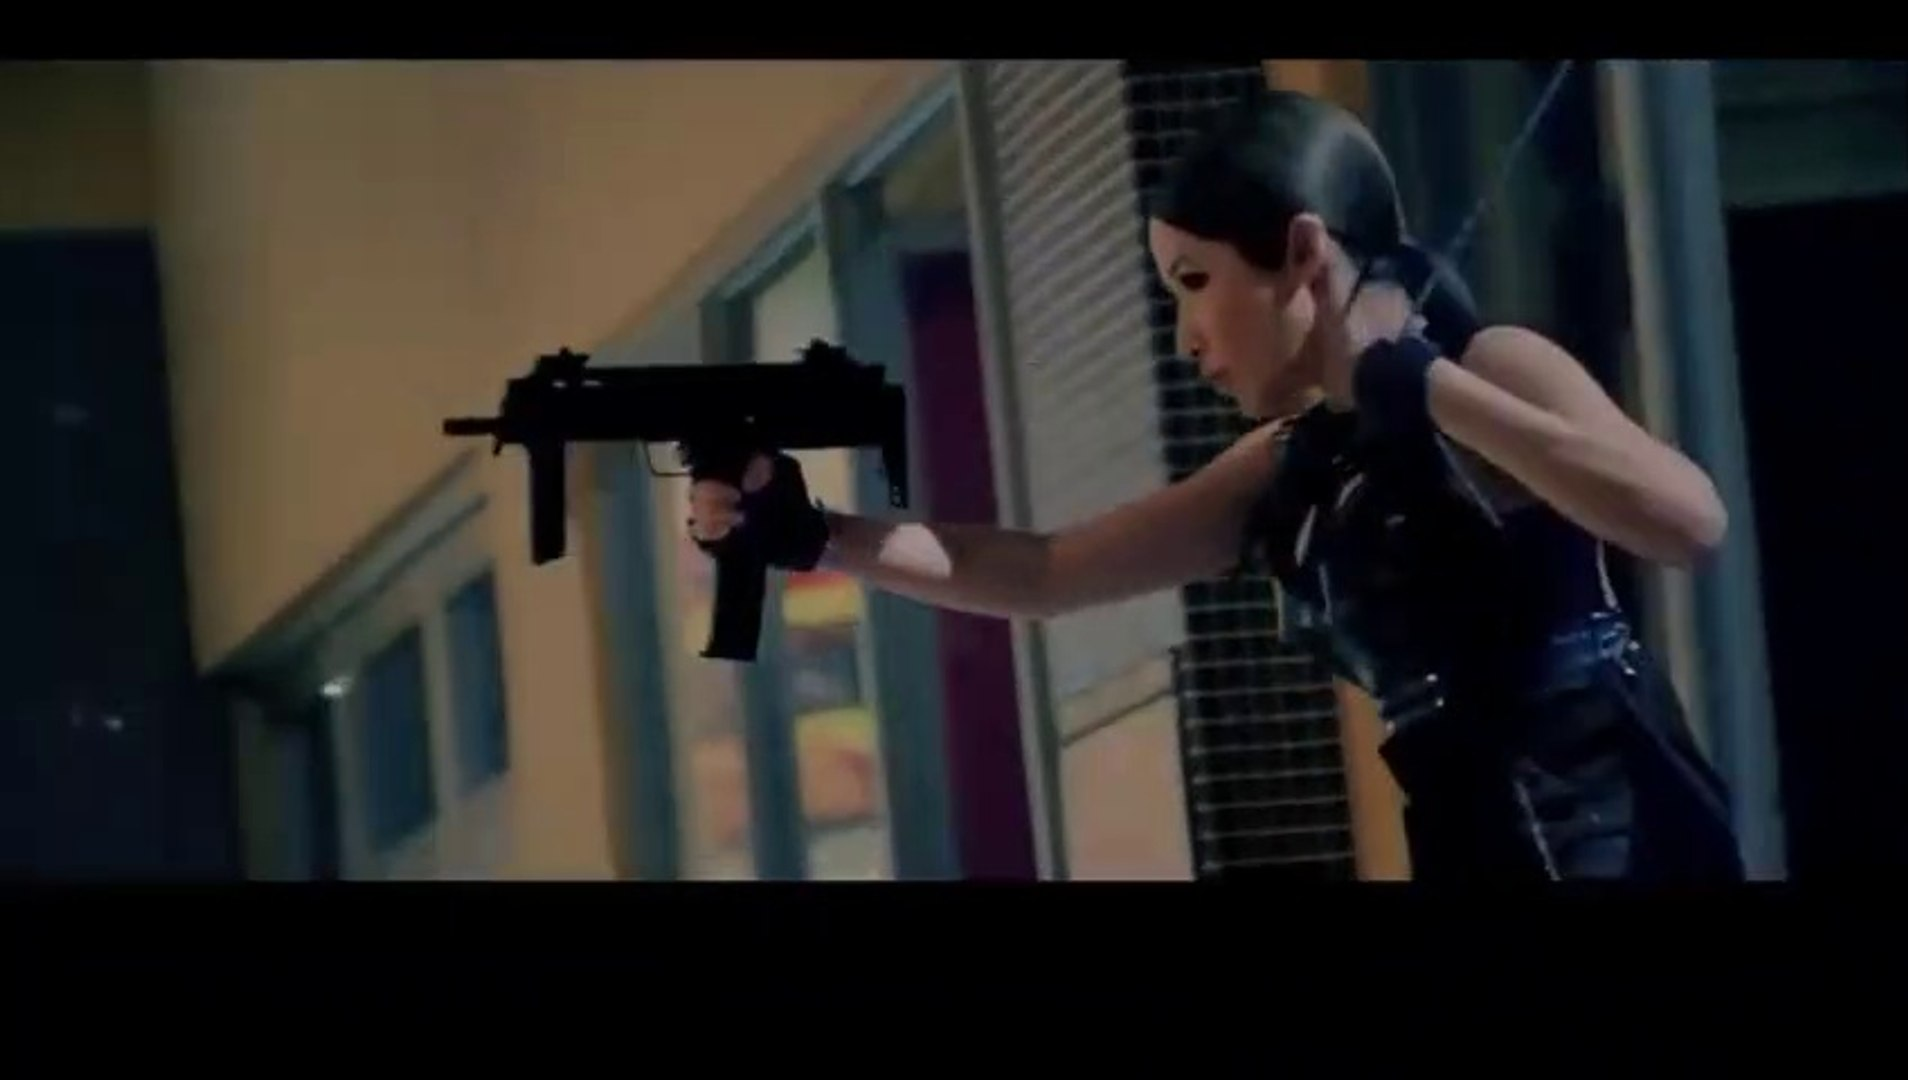 Latest Hollywood Movies Fight Scene HD -Best Hollywood Action Movies Fight Scene